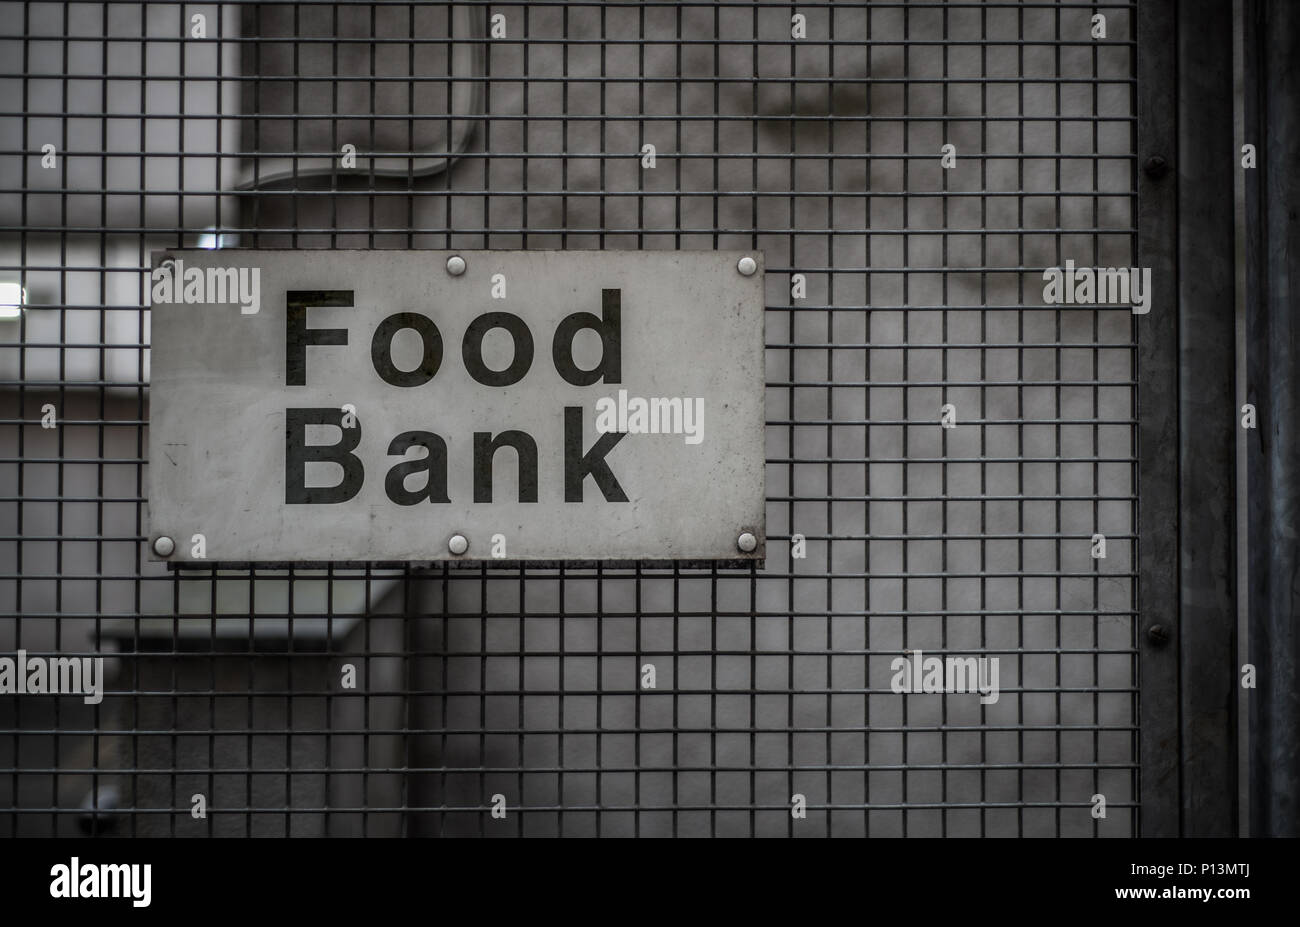 A Grungy Sign For A Food Bank In A Backstreet - Stock Image